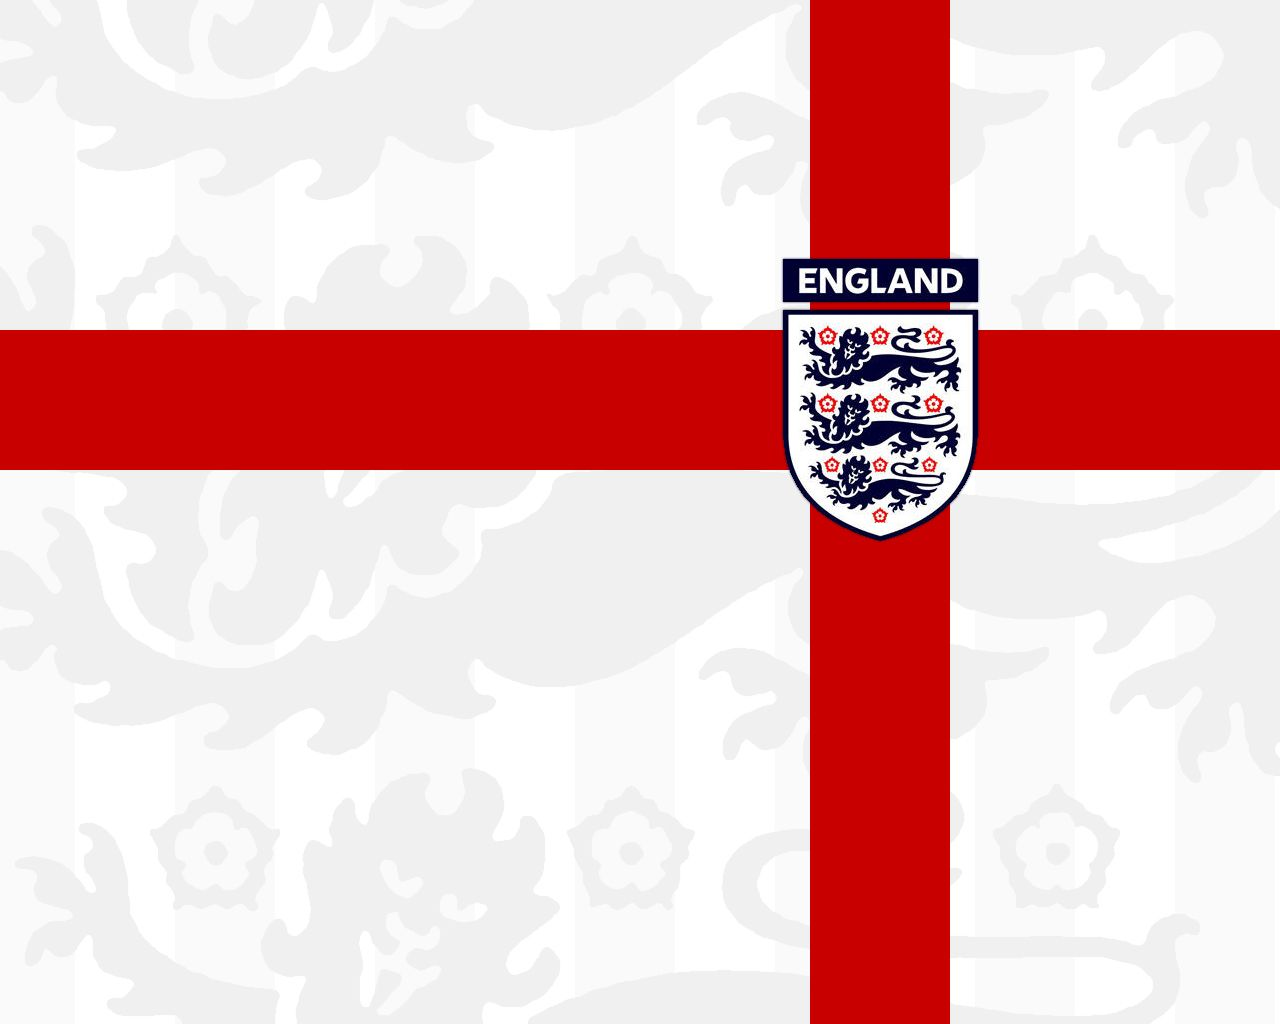 England Football Team Wallpaper